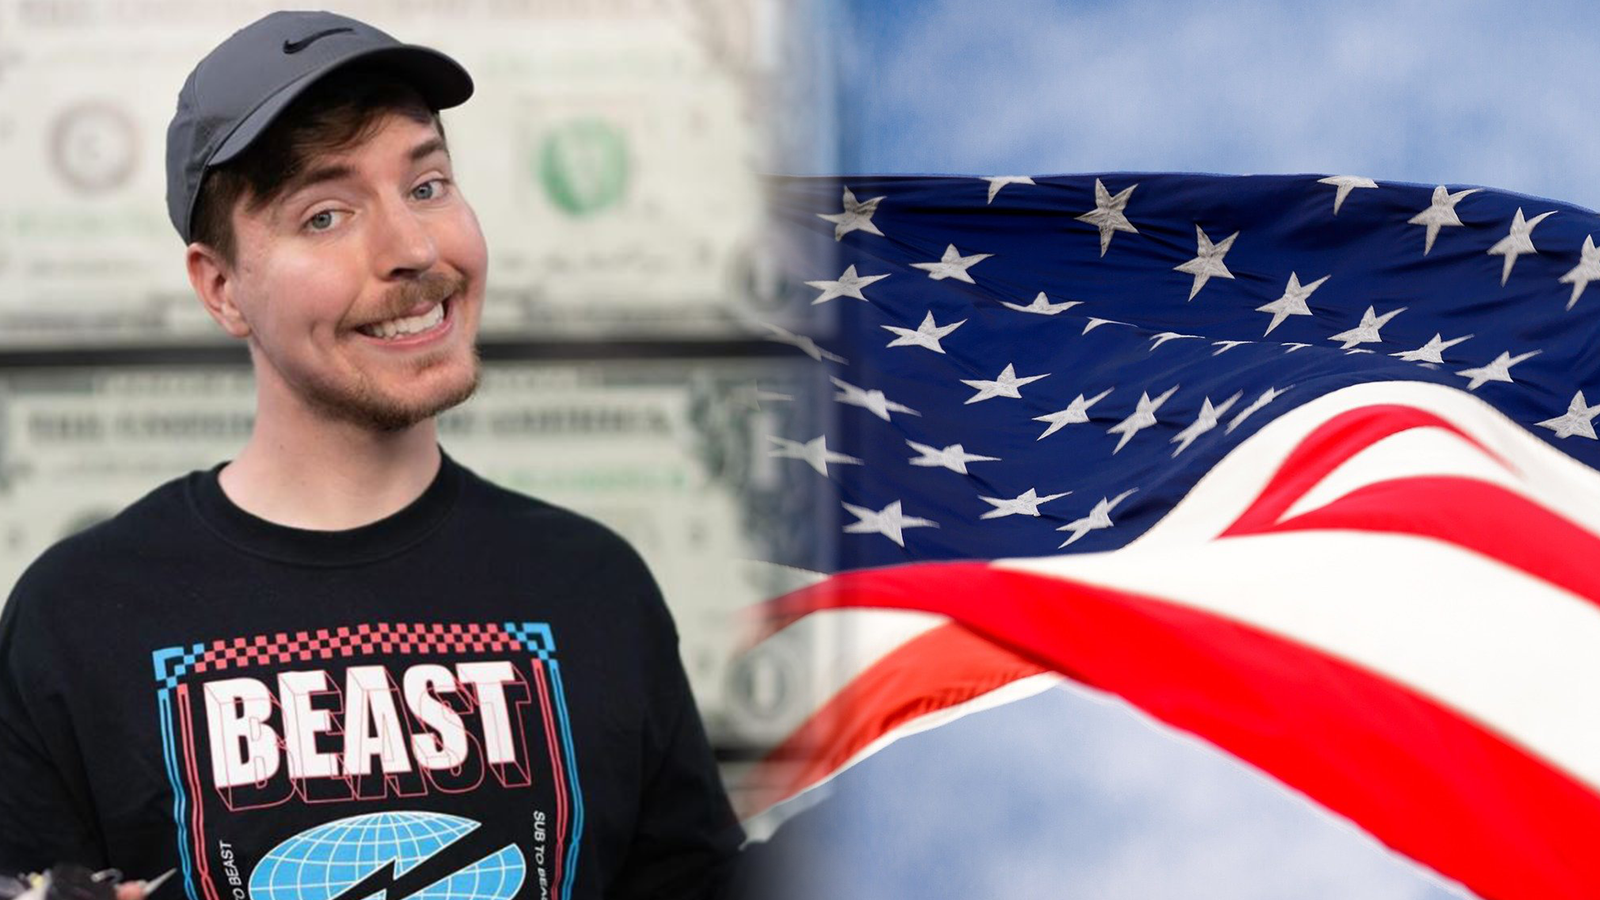 Mr Beast poses next to the American flag.